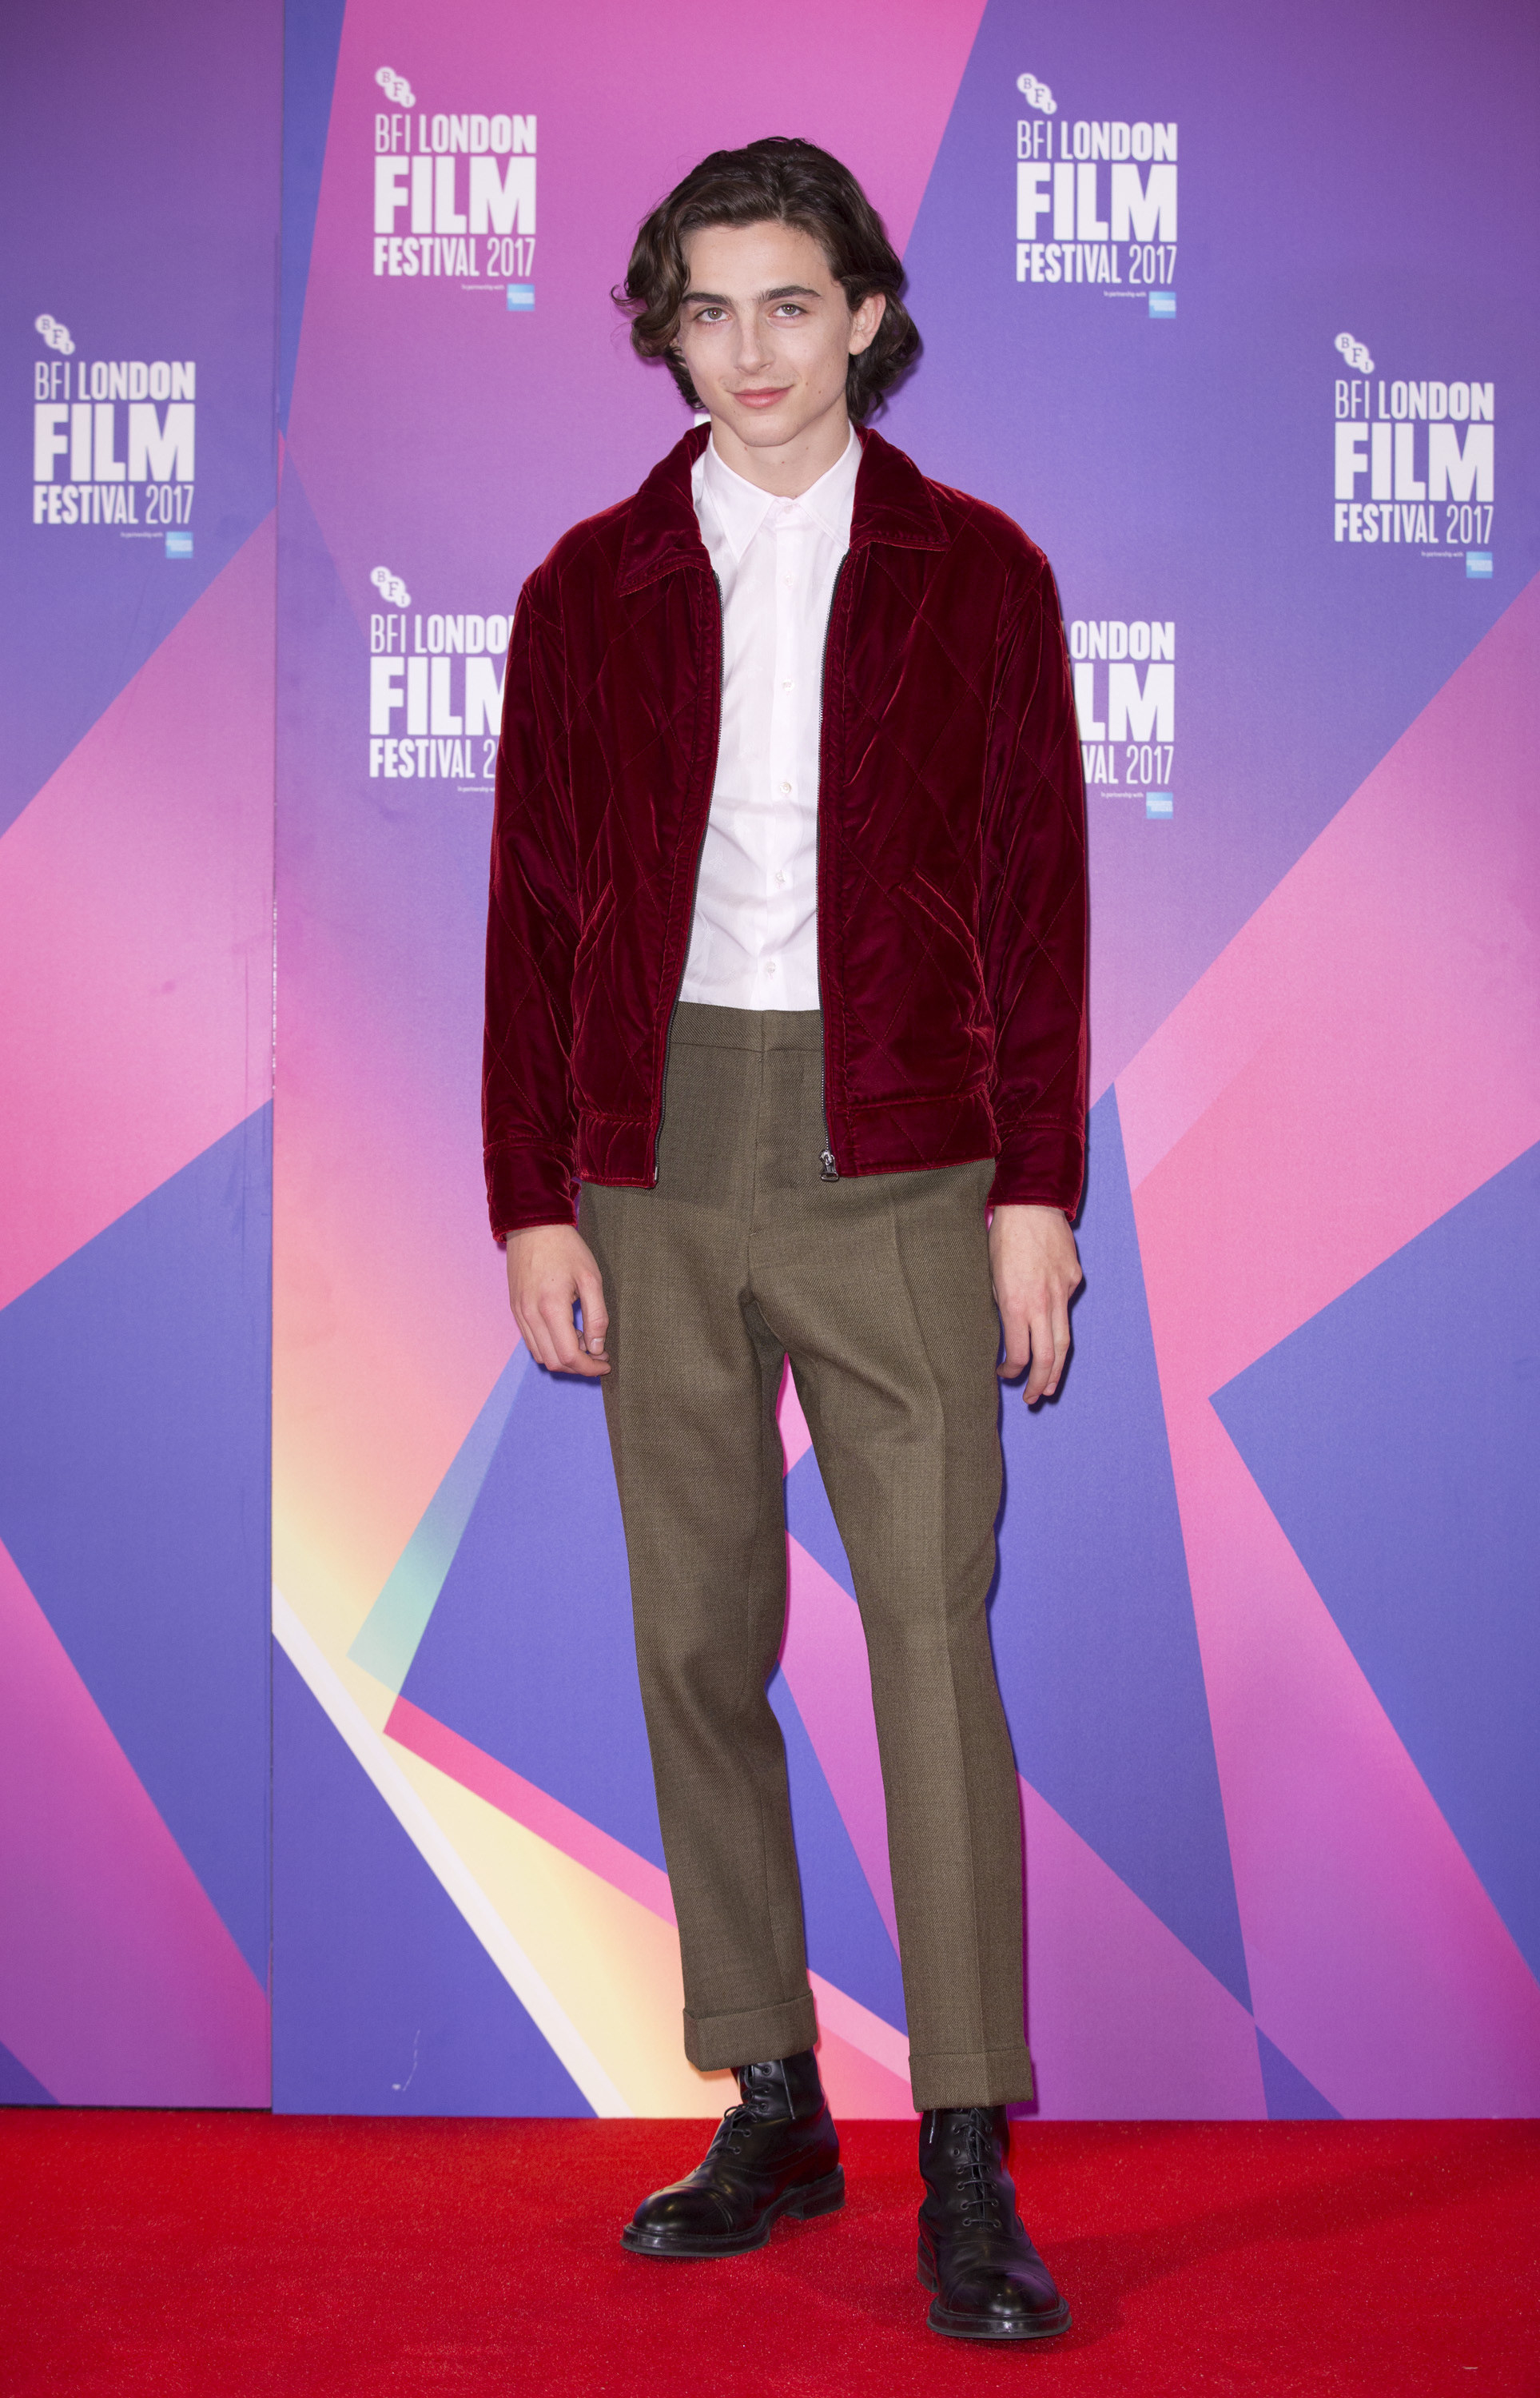 Timothée wears a maroon bomber jacket, white button down, and brown tailored pants